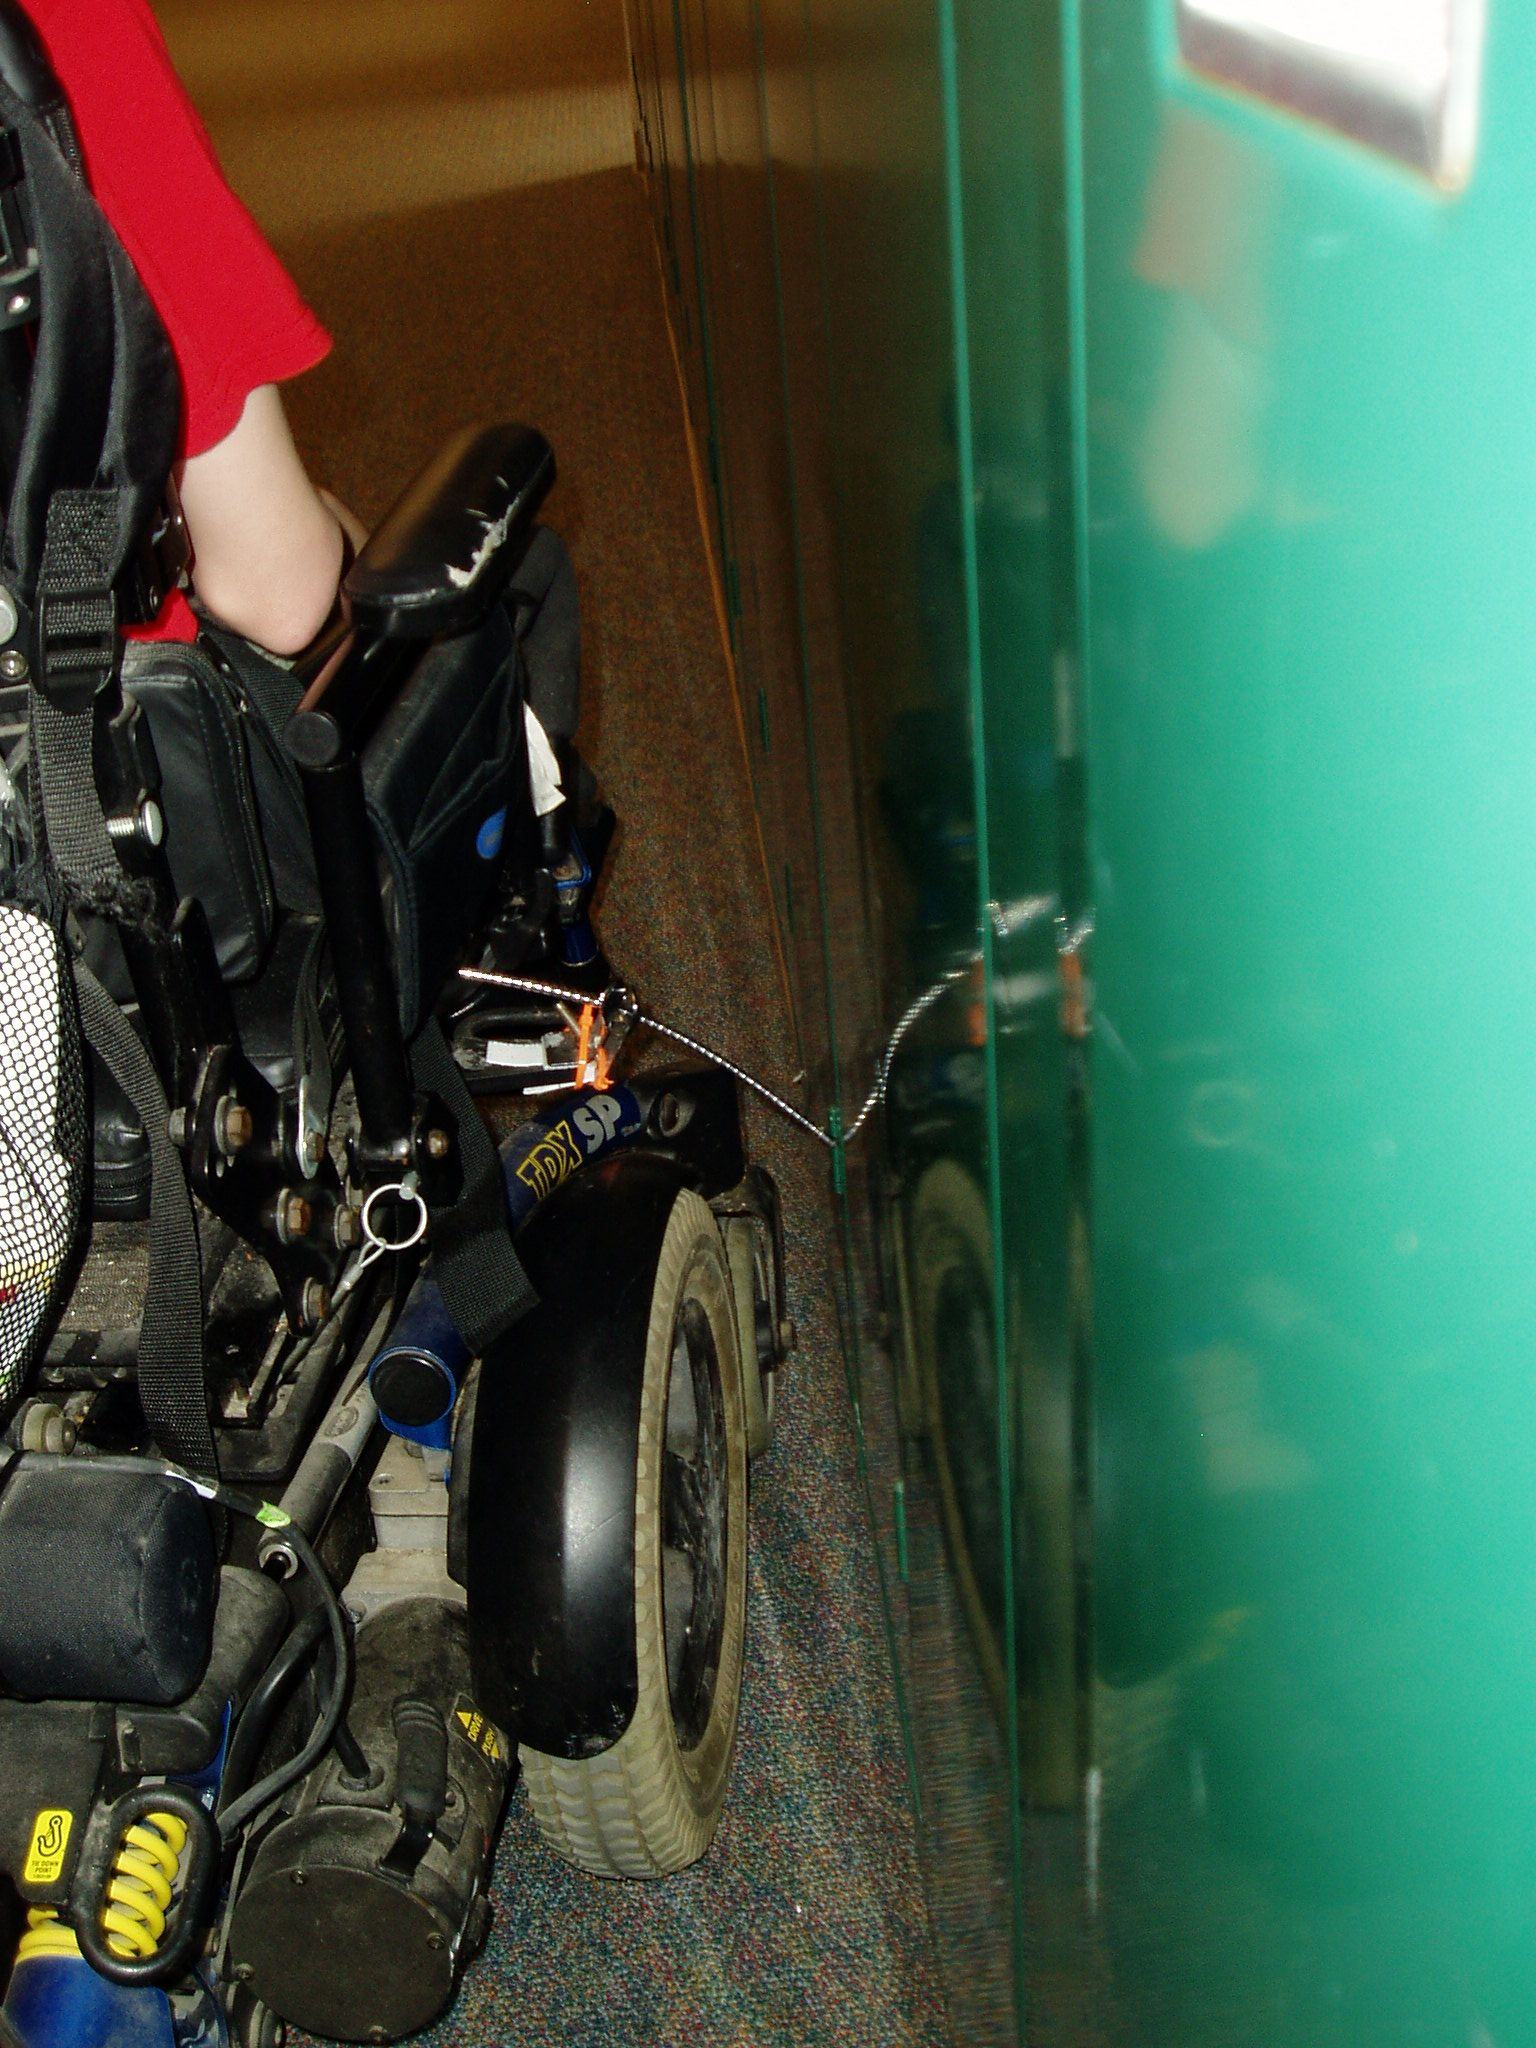 Attach curb feelers to wheelchairs used by individuals with